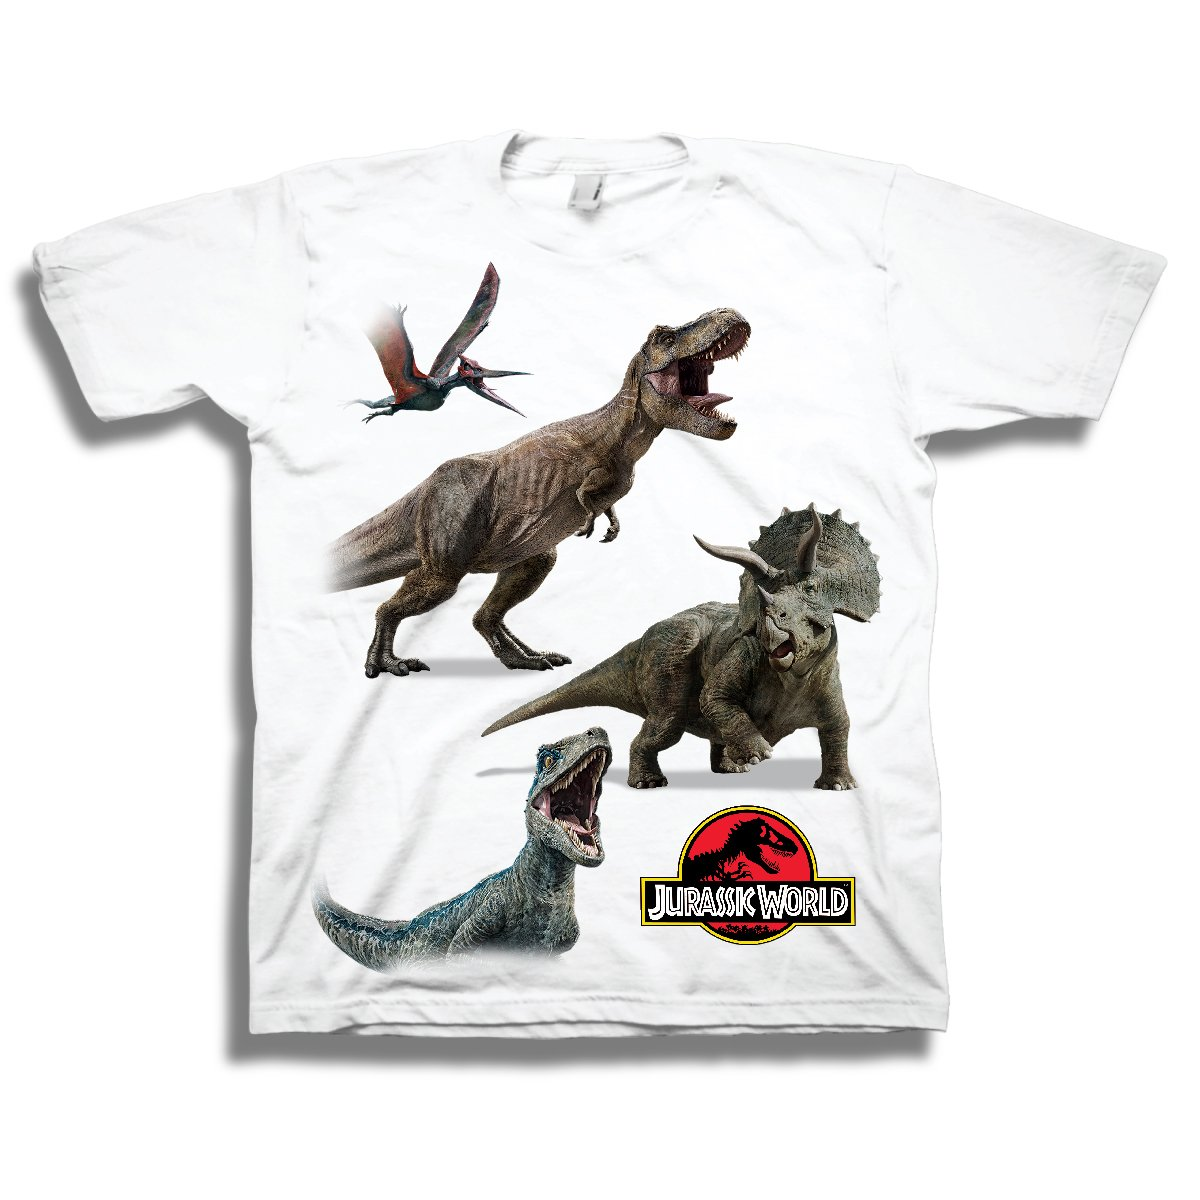 Jurassic Toddler World Dinosaur Shirt Park Tee Featuring T-Rex, Velociraptor, and Other Dinosaurs World White T-Rex Shirt (4T)